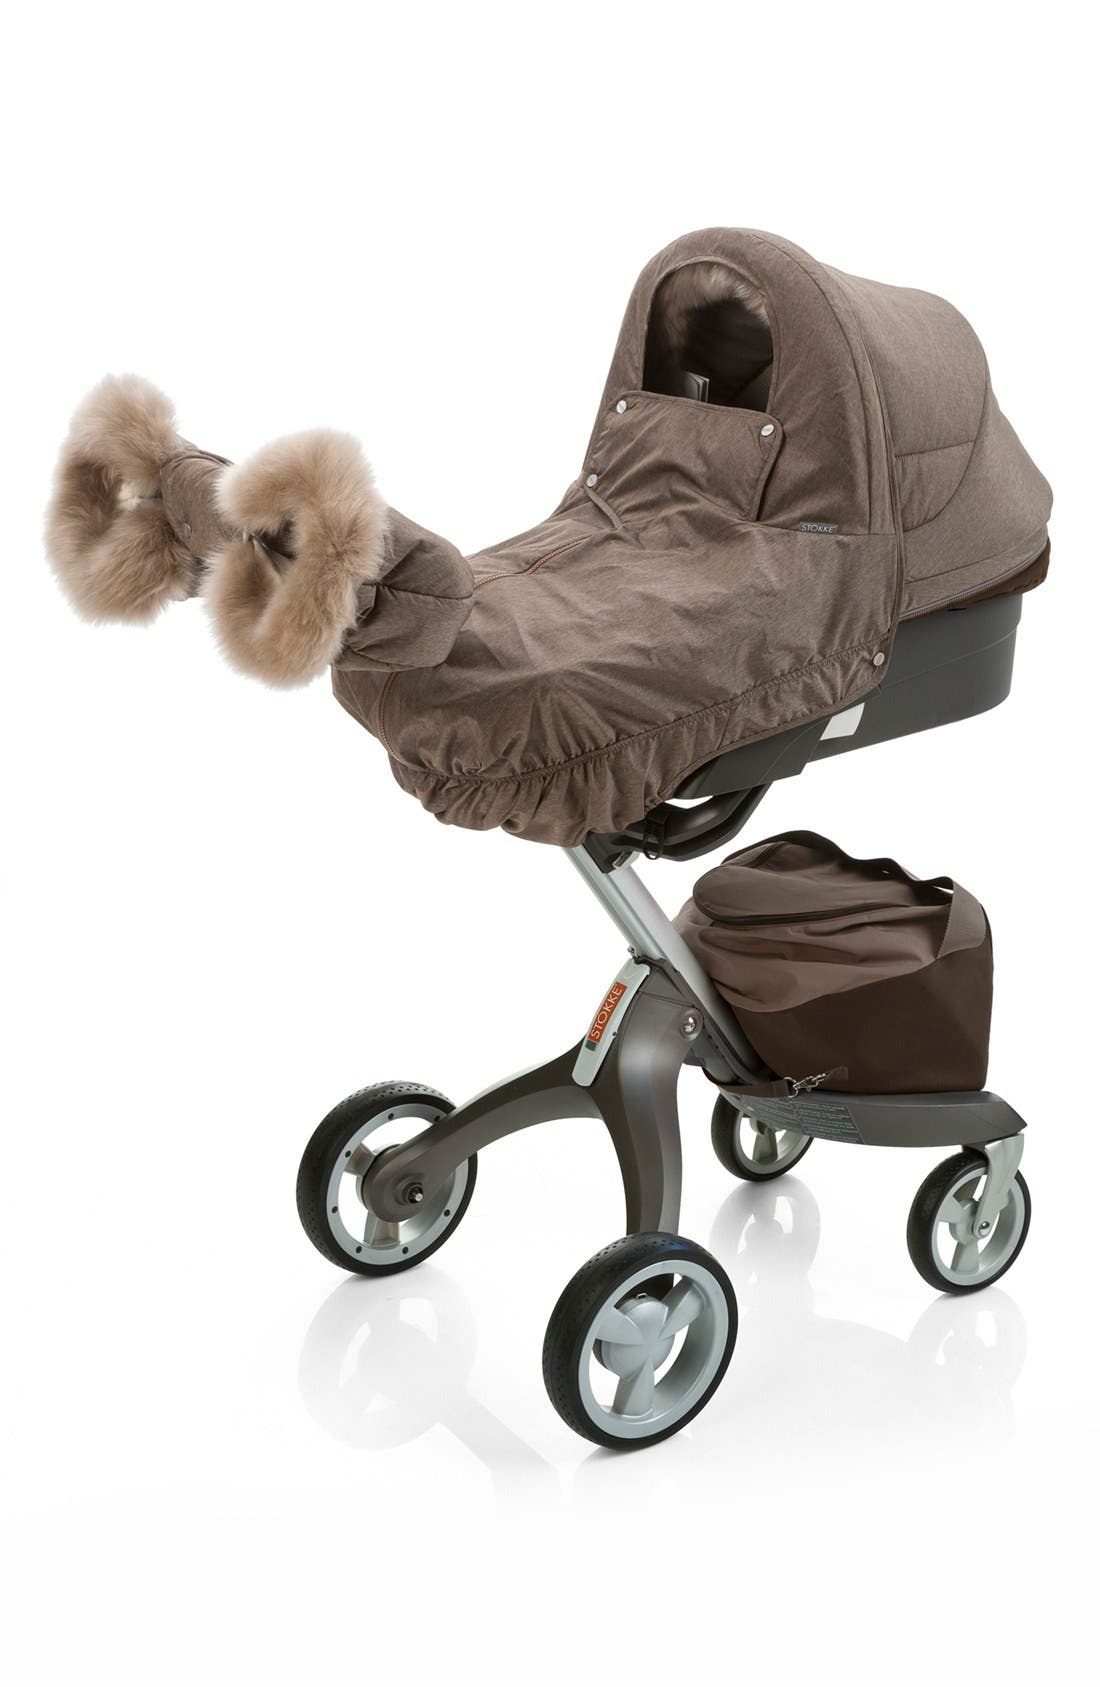 Alternate Image 1 Selected - Stokke Stroller Winter Kit